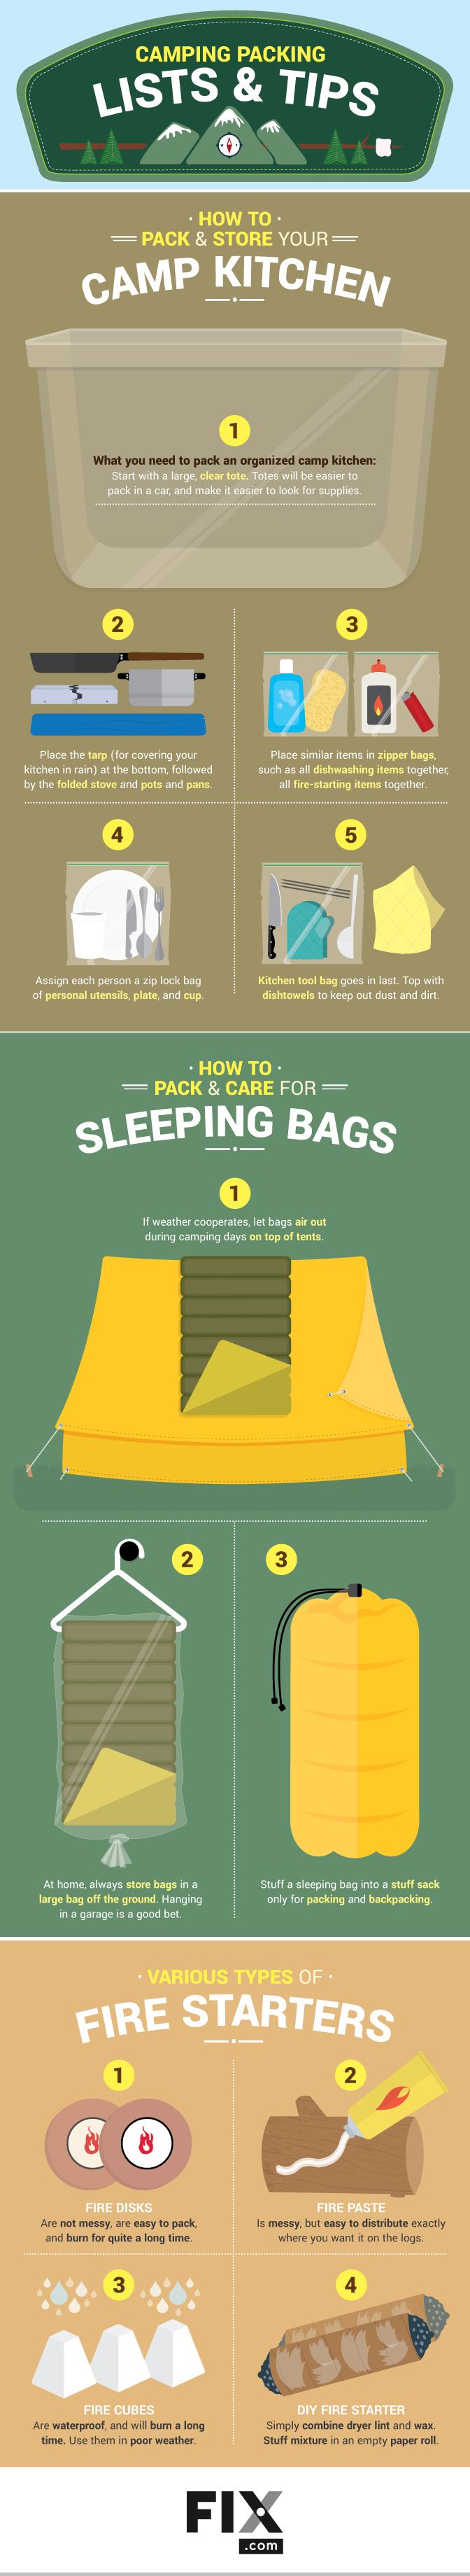 Camping Packing Lists and Tips Everything You Need to